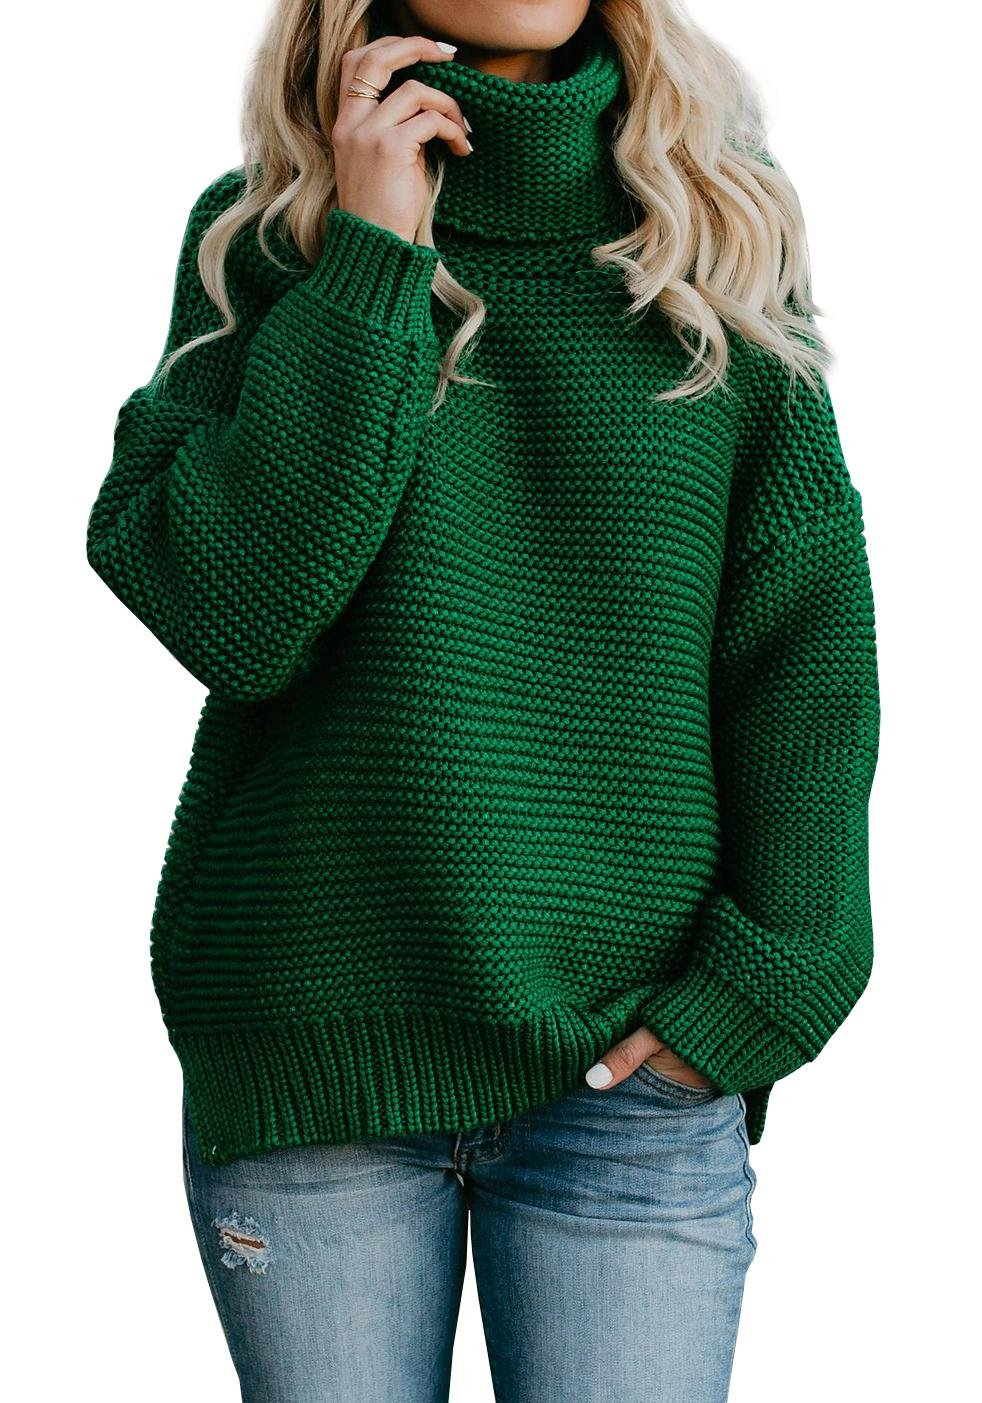 Gobought Womens Turtleneck Knitted Sweater Loose Long Sleeve Pullover with Slit